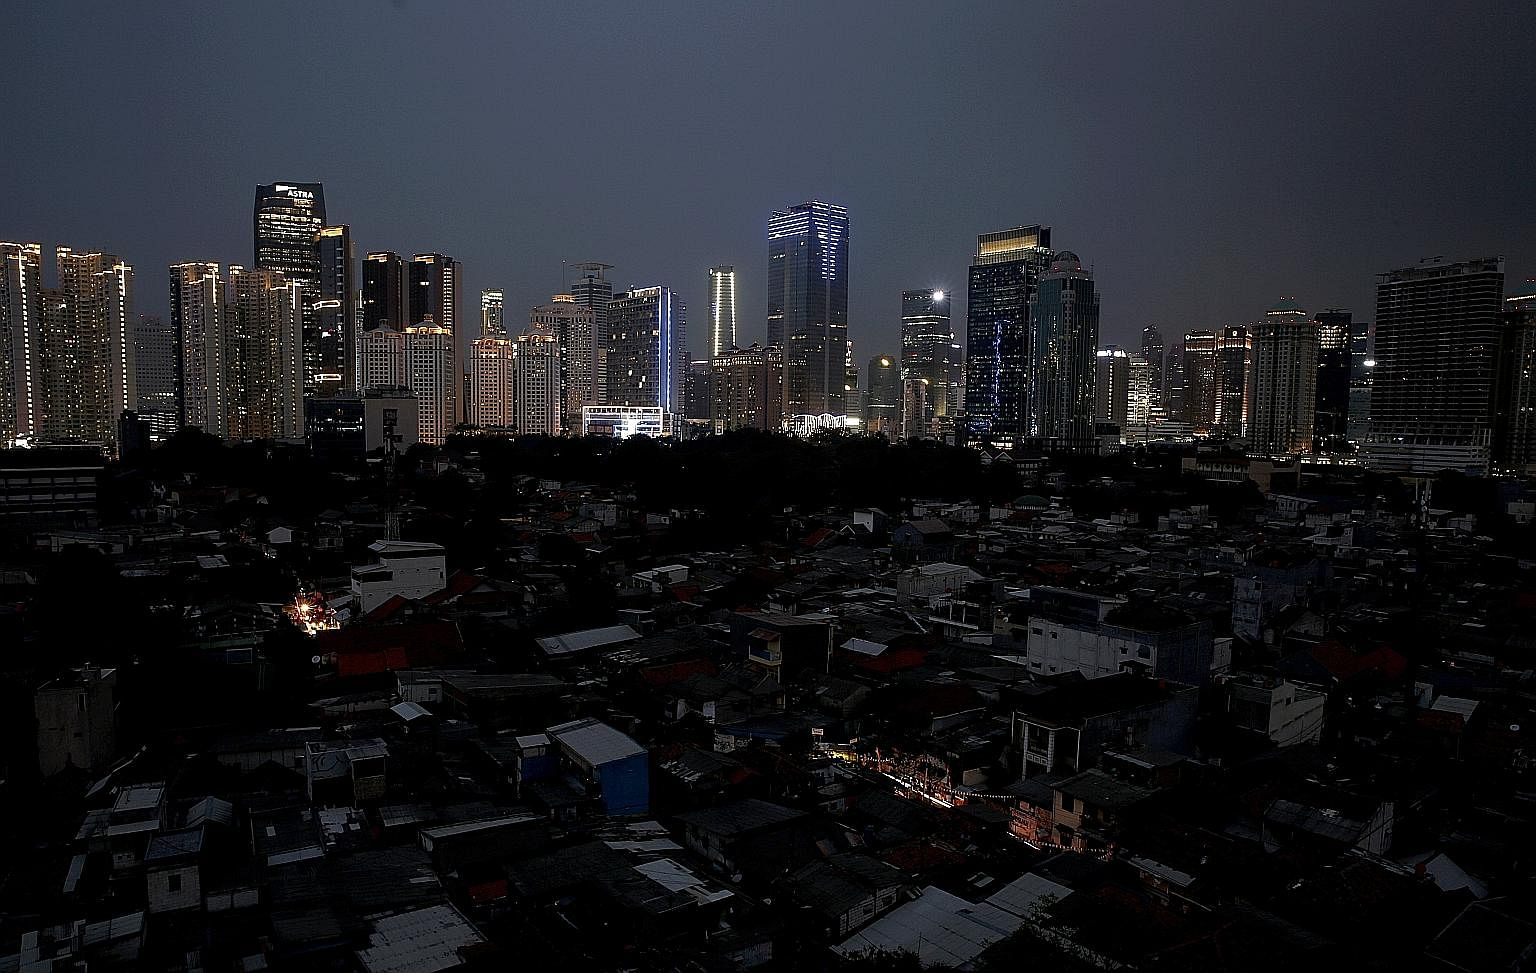 A major power outage hit Jakarta and other areas in Indonesia yesterday. The Indonesian capital, as well as parts of West Java and Central Java, experienced a major blackout affecting tens of millions of people. The mass rapid transit system was also